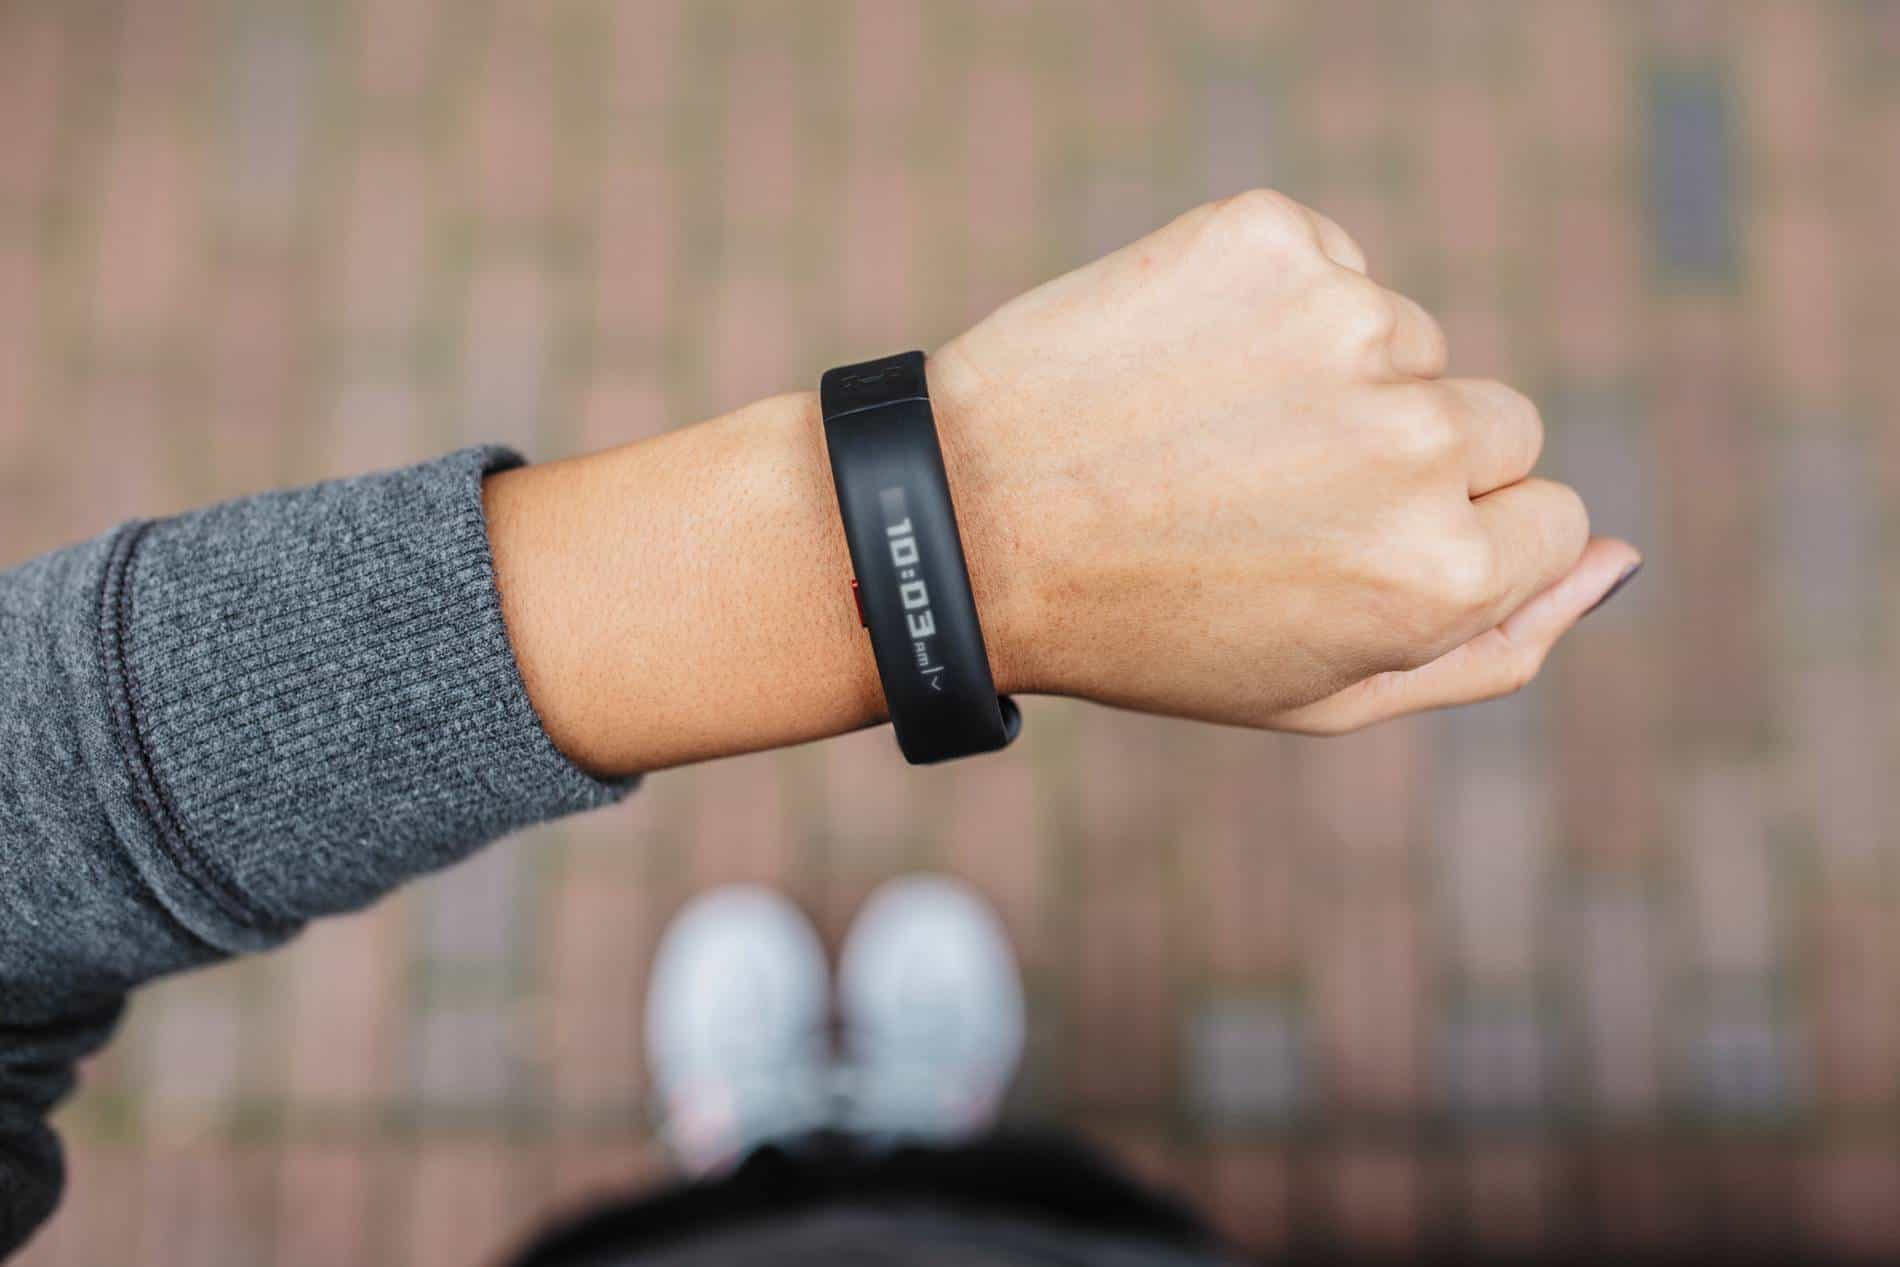 HTC Under Armour Band 3